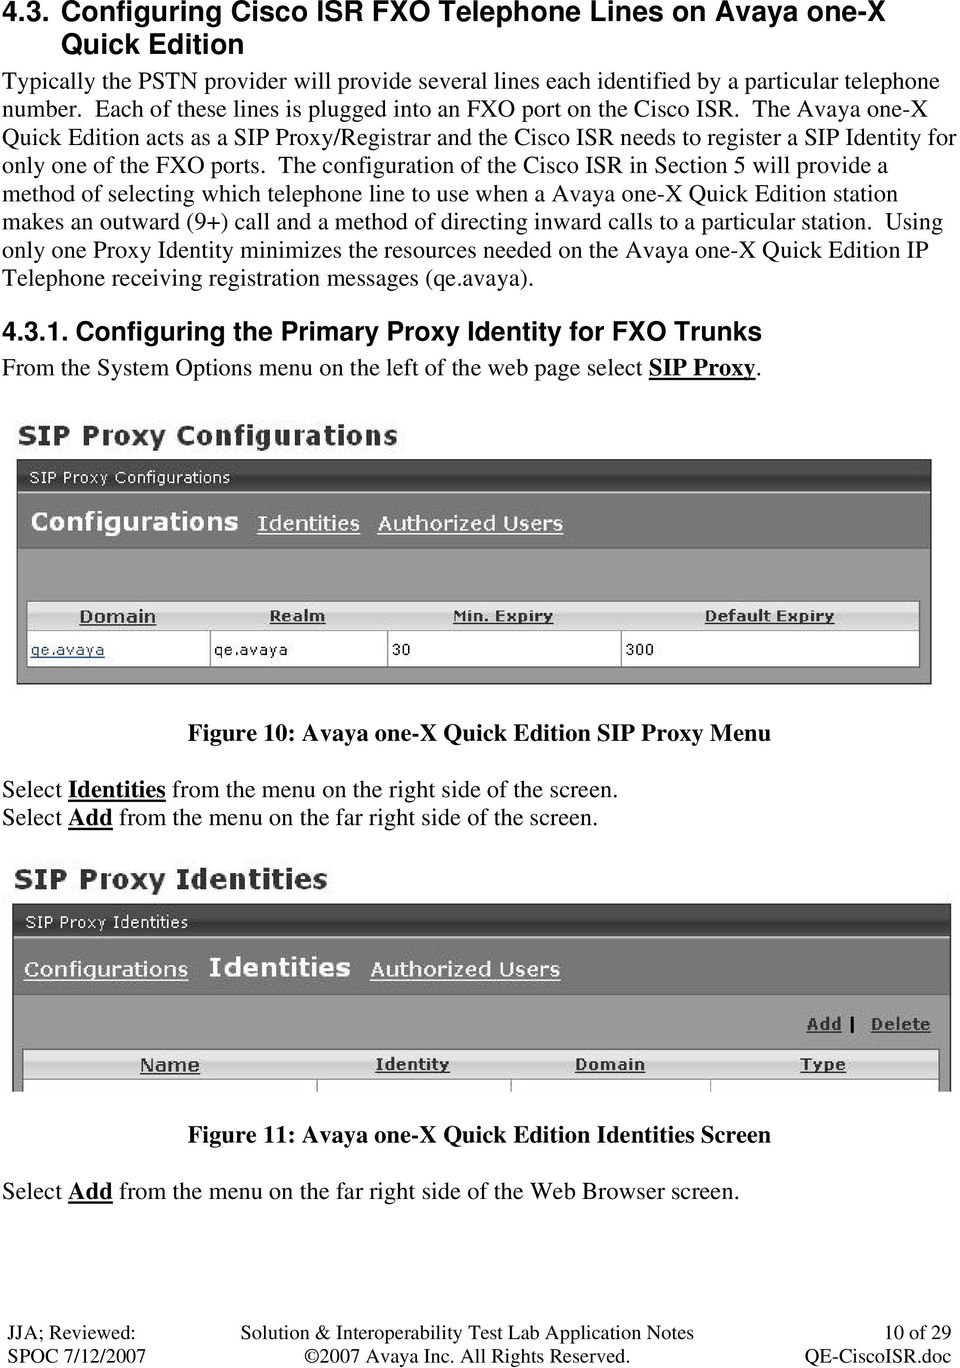 The Avaya one-x Quick Edition acts as a SIP Proxy/Registrar and the Cisco ISR needs to register a SIP Identity for only one of the FXO ports.